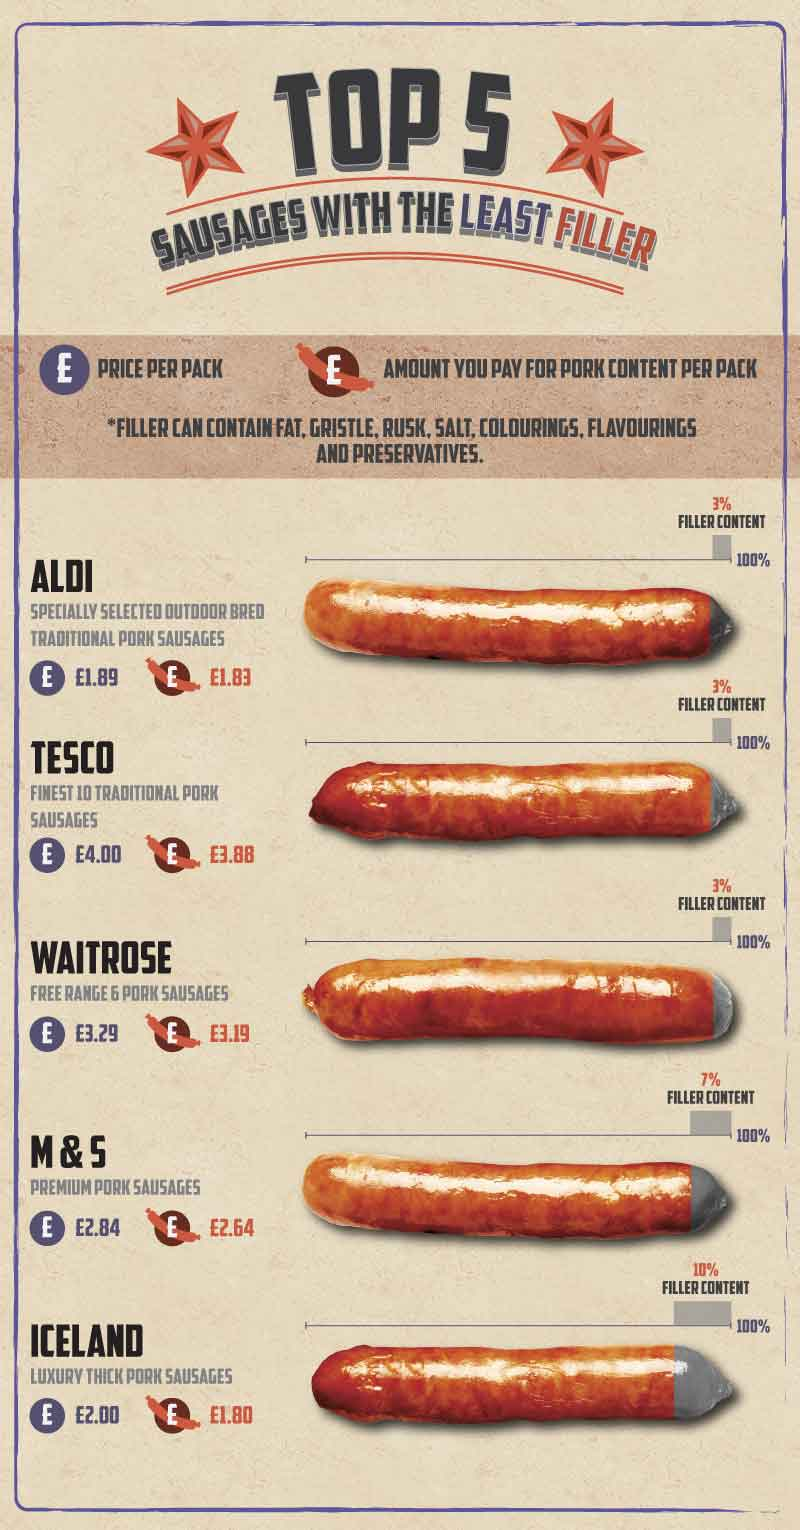 Image showing the top supermarkets who add the least filler in their sausage content